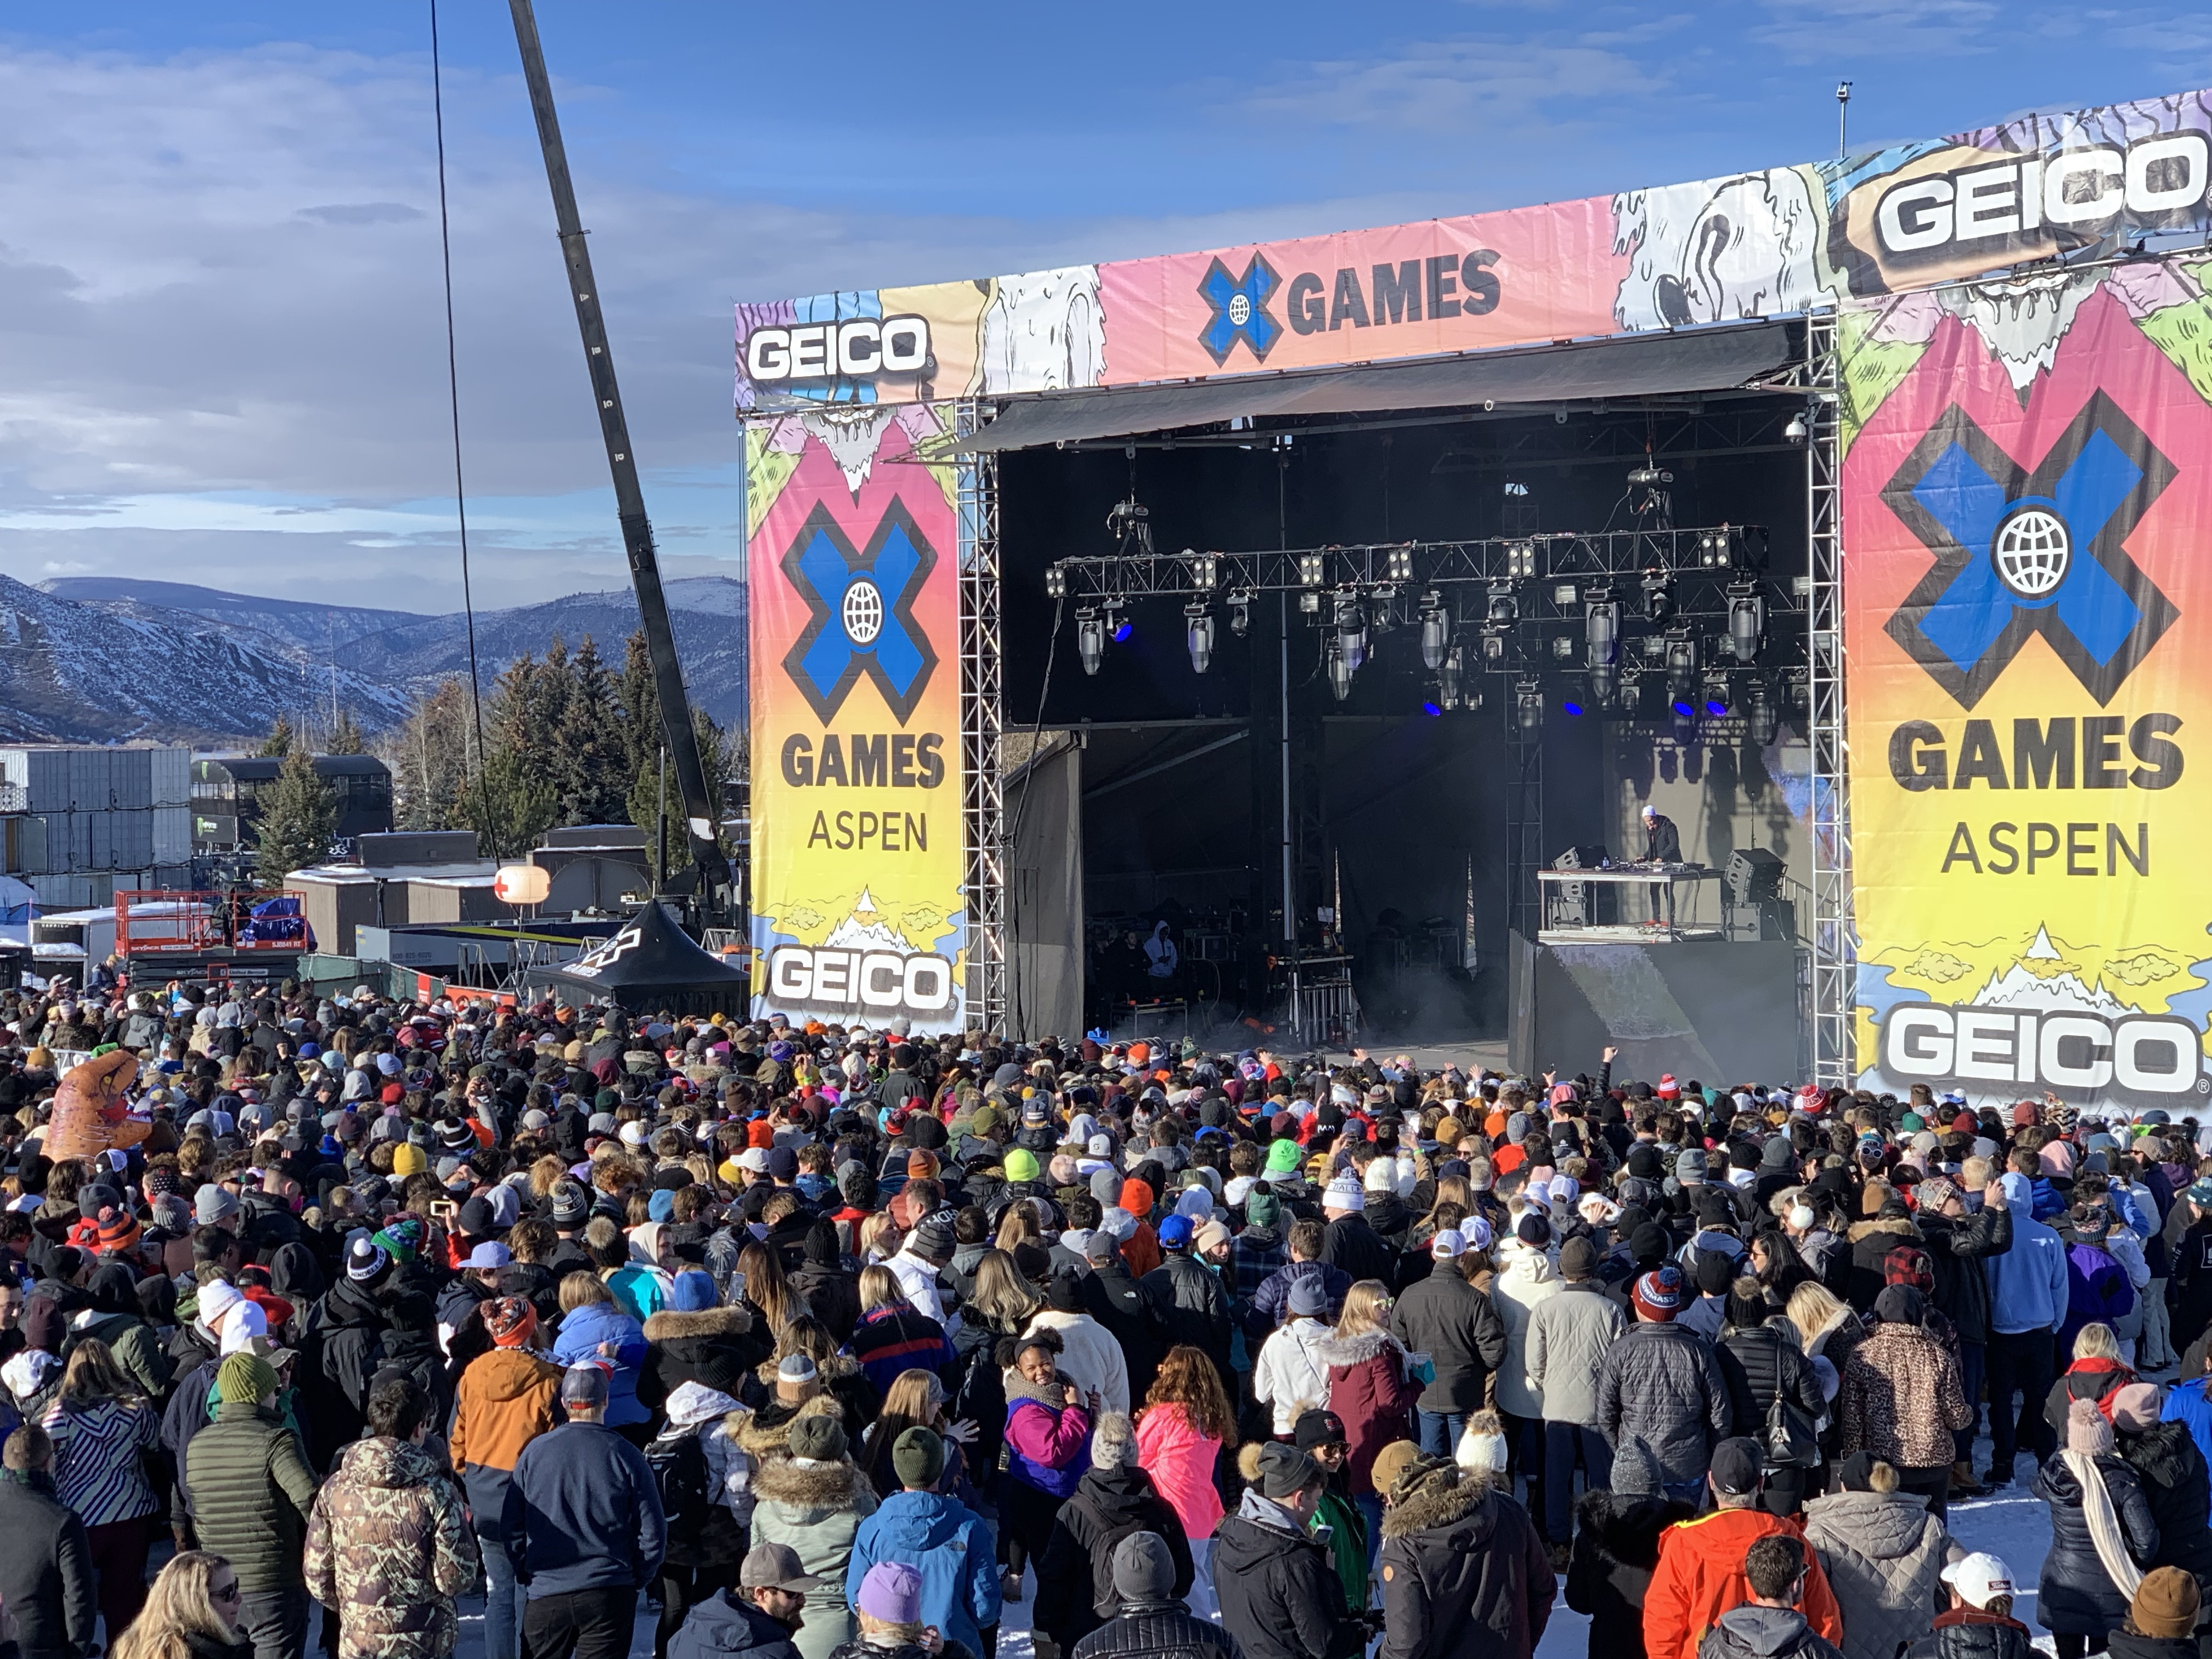 Police: X Games crowds well-behaved over weekend in Aspen area